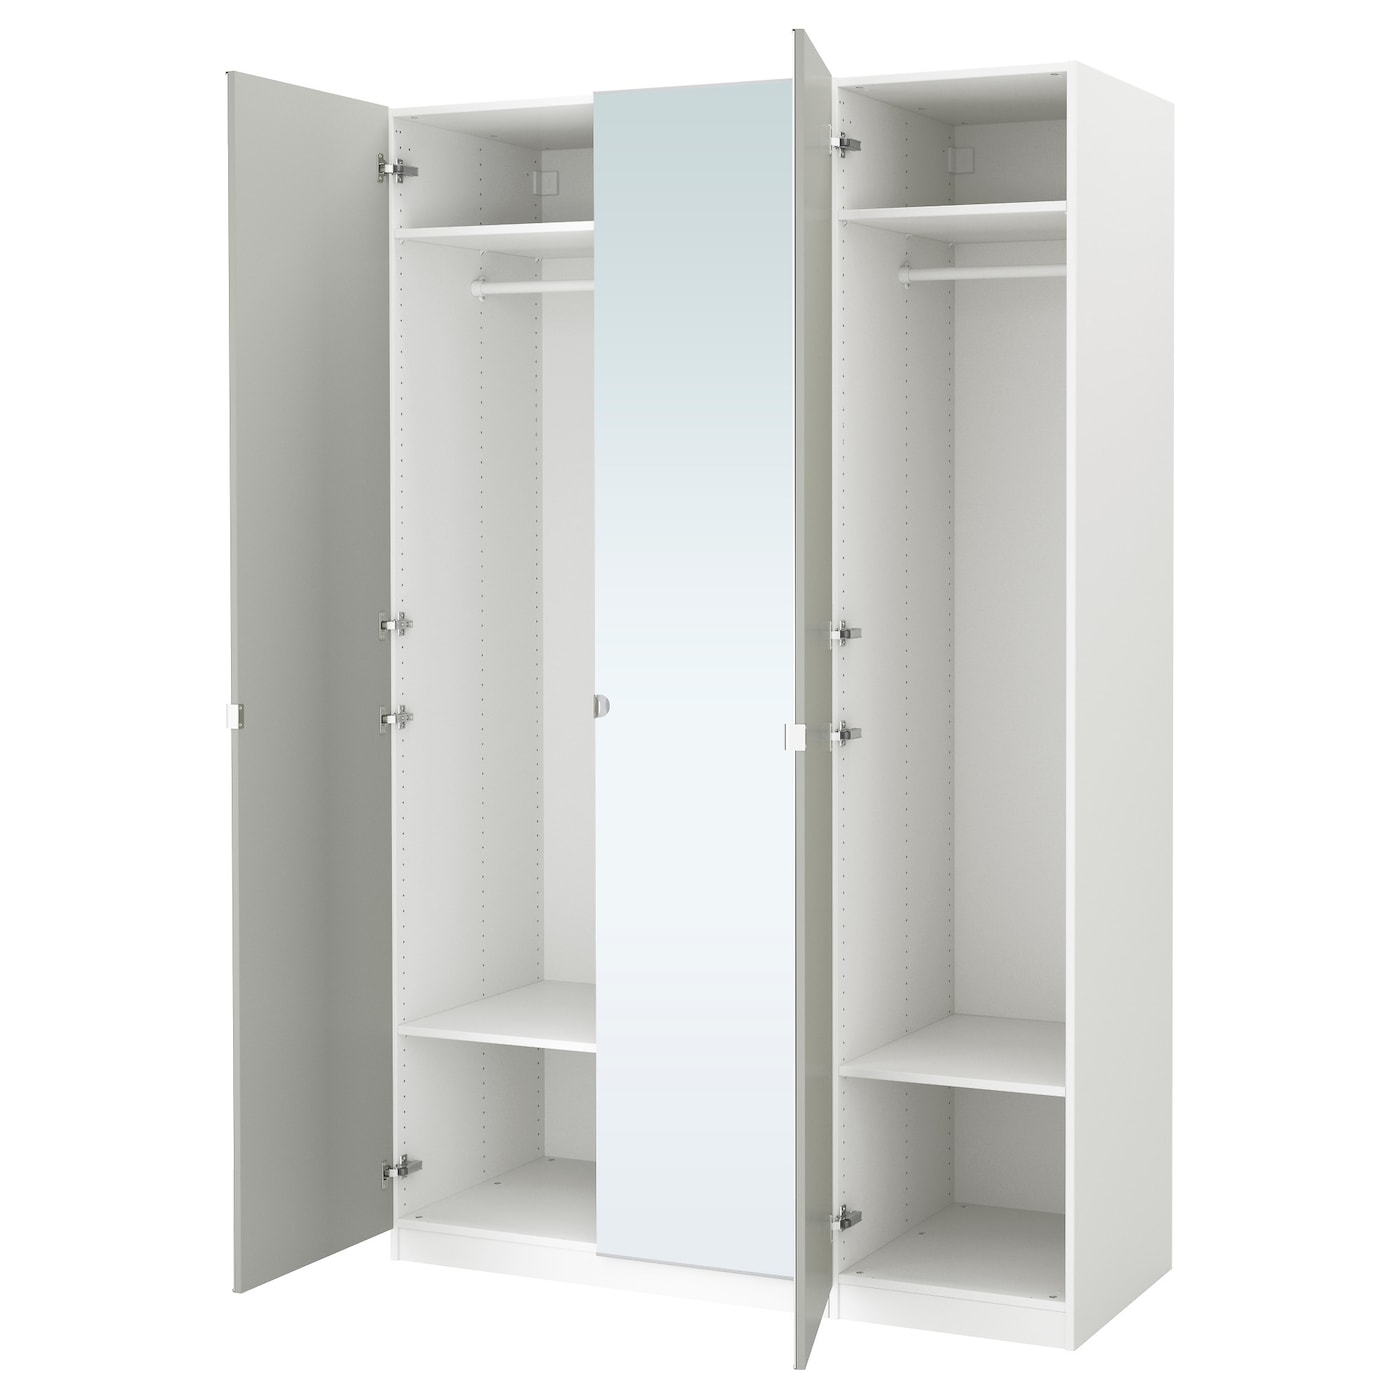 Pax wardrobe white vikedal mirror glass 150x60x236 cm ikea - Ikea armoire with mirror ...